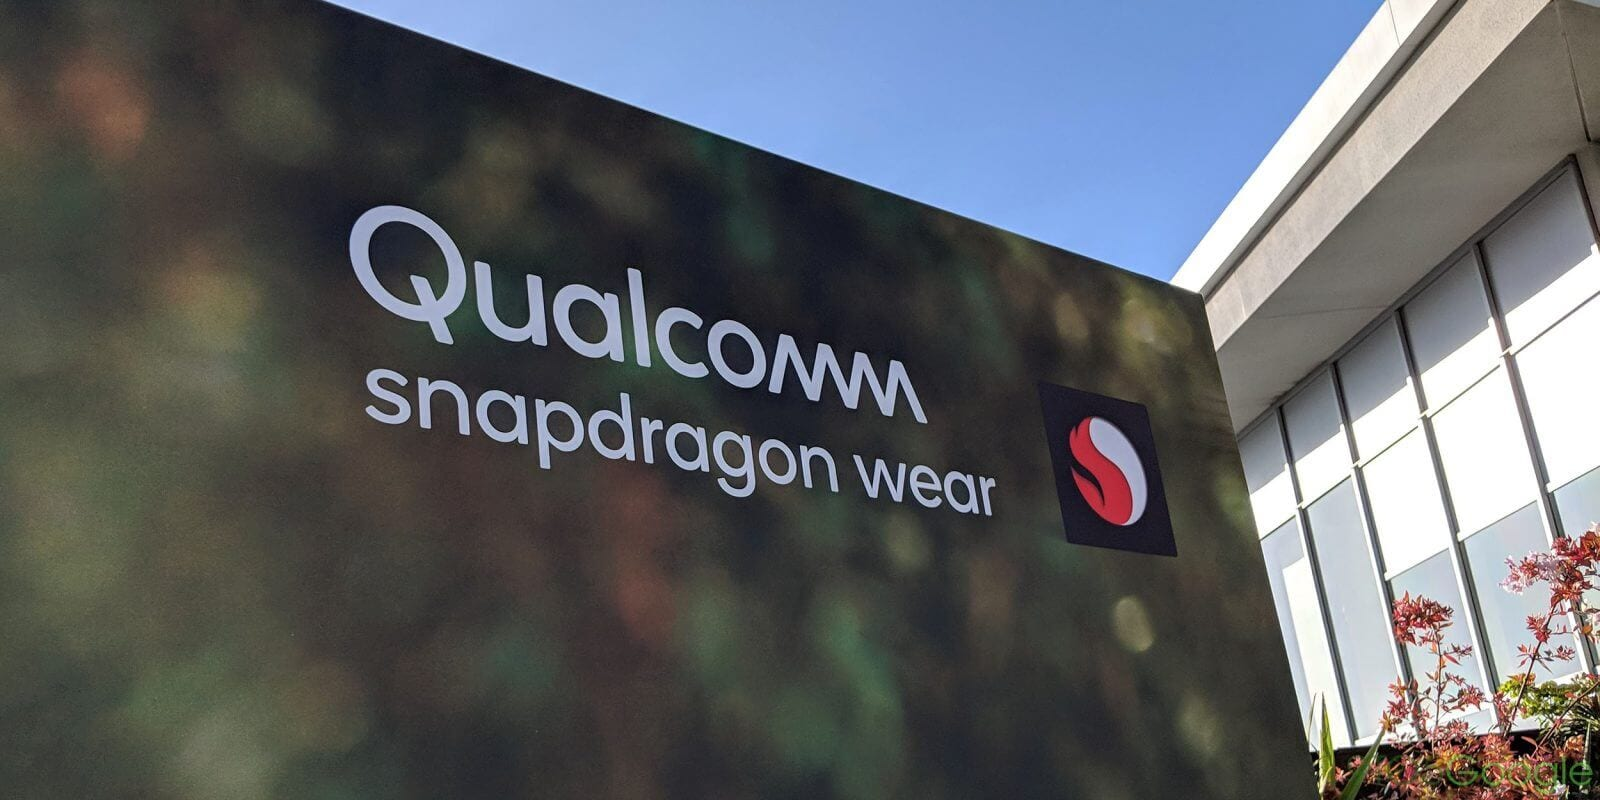 Placa do evento da qualcomm que dá detalhes sobre os investimentos no snapdragon wear